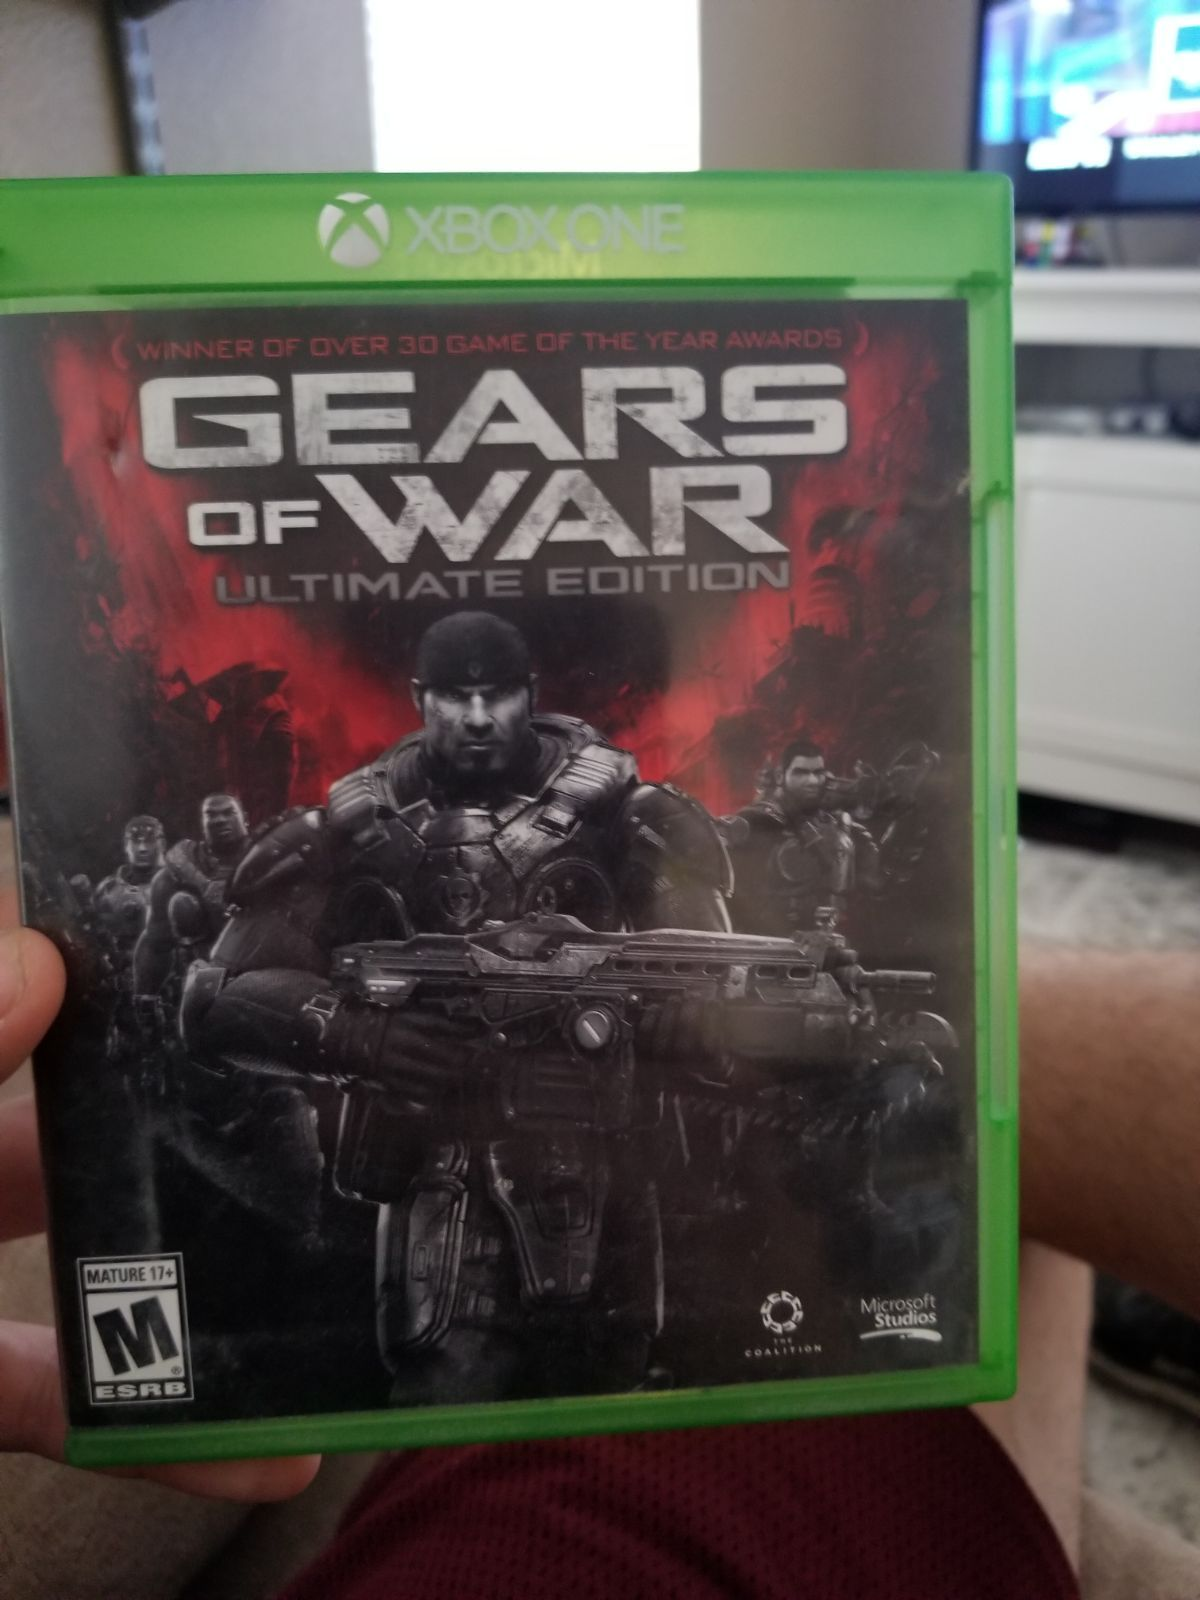 Pin On Xbox Gears of war ultimate edition xbox